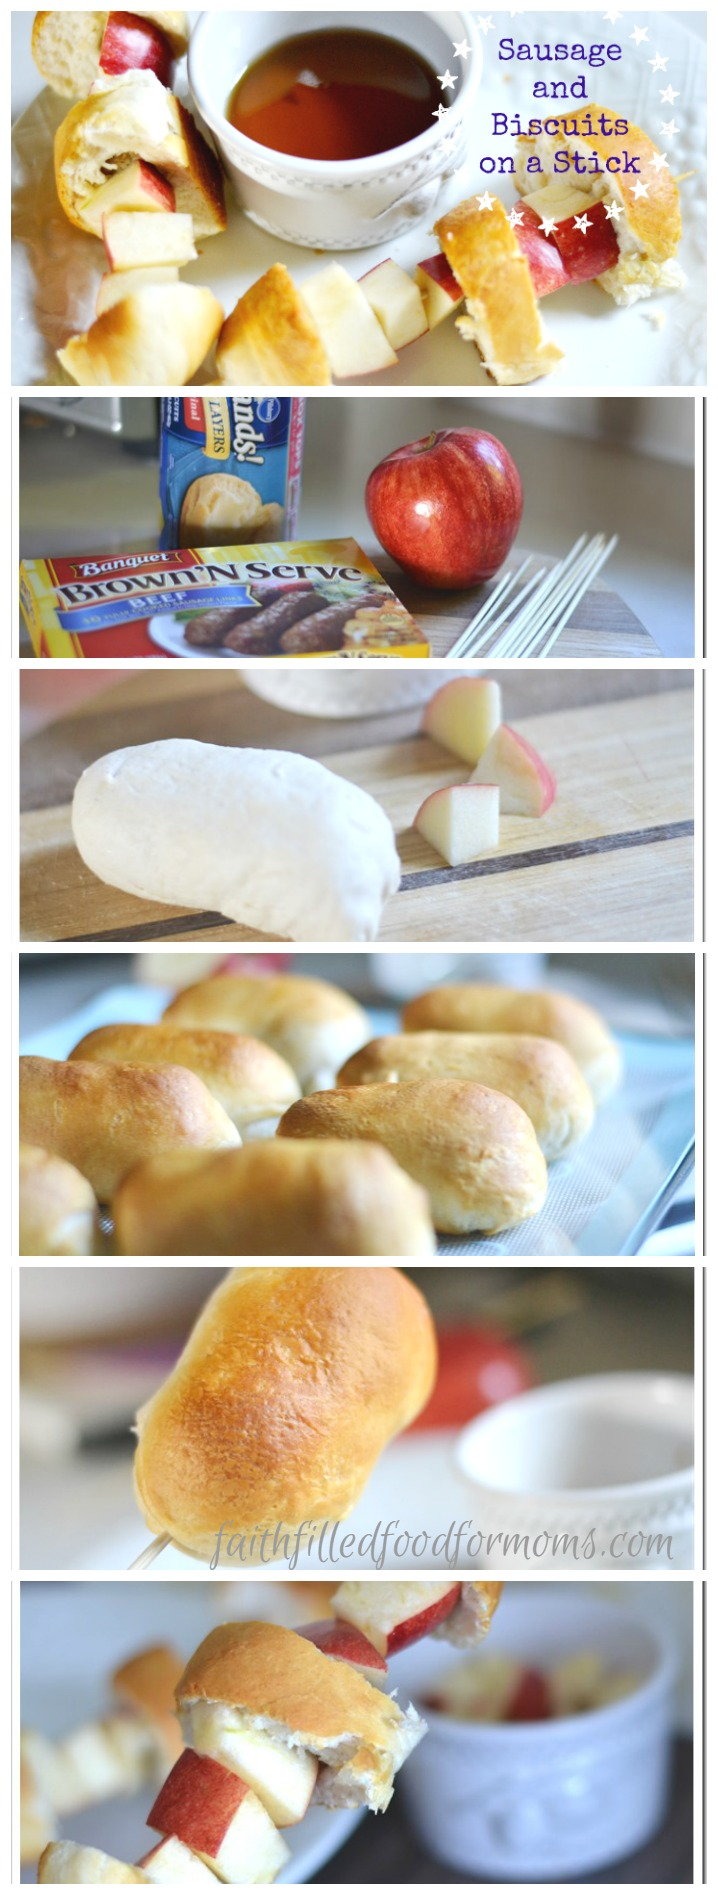 Sausage and Biscuits on a Stick. A super easy and fun for kids friendly breakfast, lunch or dinner! Use a dipping sauce or not. Kids love snack food on a stick! Make this for a quick on the go anytime food! #fingerfood #kids #snacks #snackattack